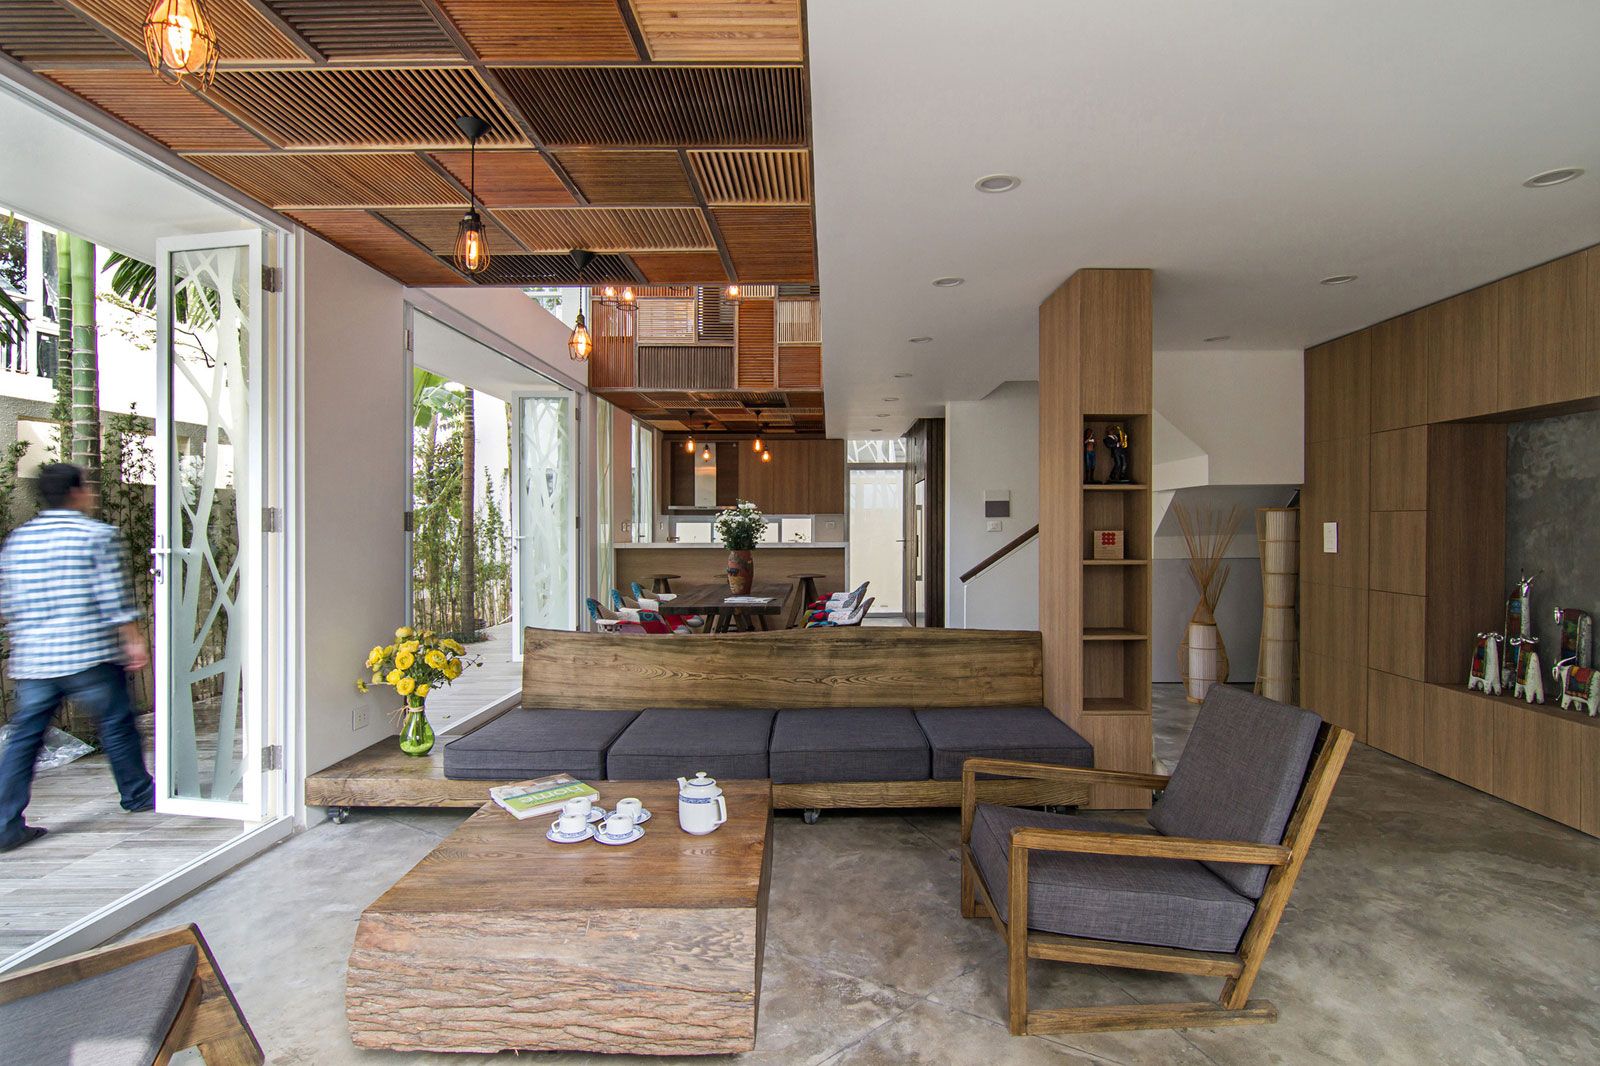 EPV Semi-Detached House Located in Ecopark Green Urban Area, Vietnam by AHL architects associates-03